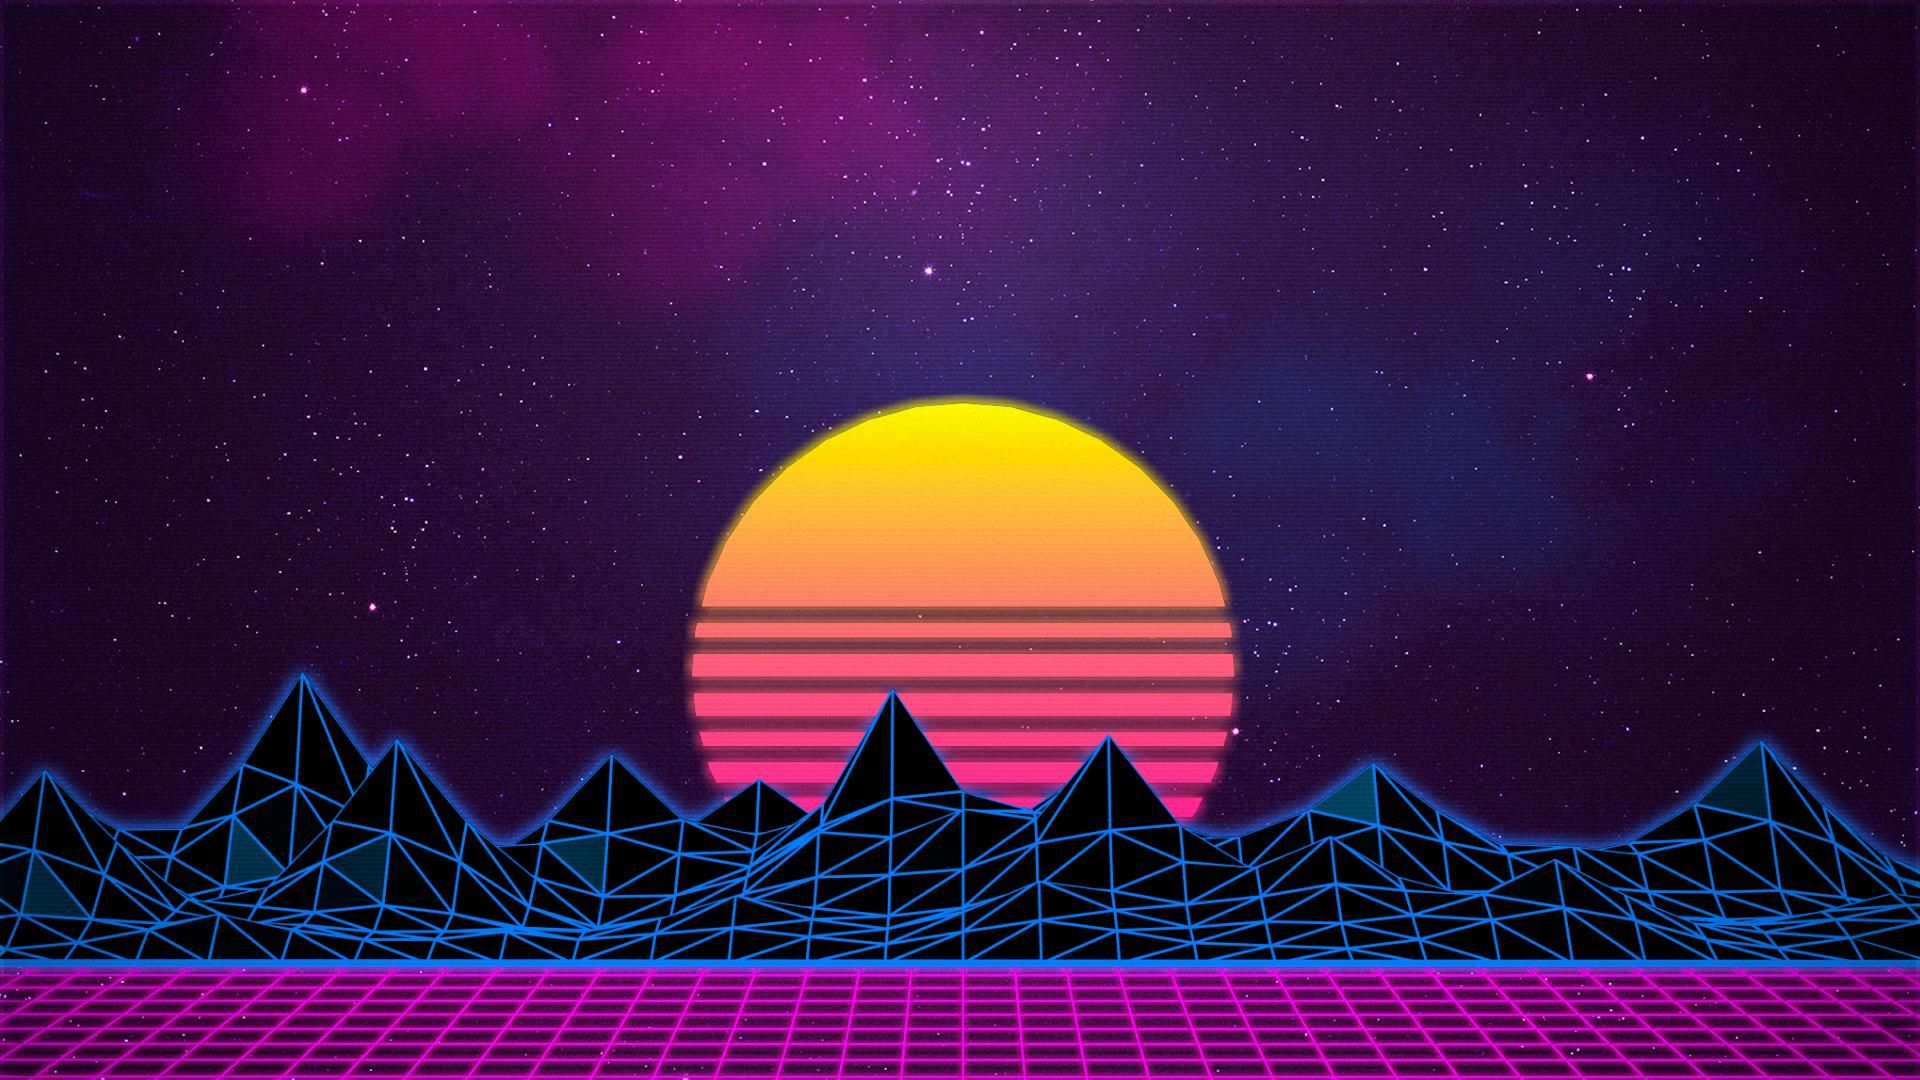 1920x1080 Synthwave New Retro Wave Neon Digital Art Wallpaper Art And Vaporwave Wallpaper Synthwave Art Retro Wallpaper